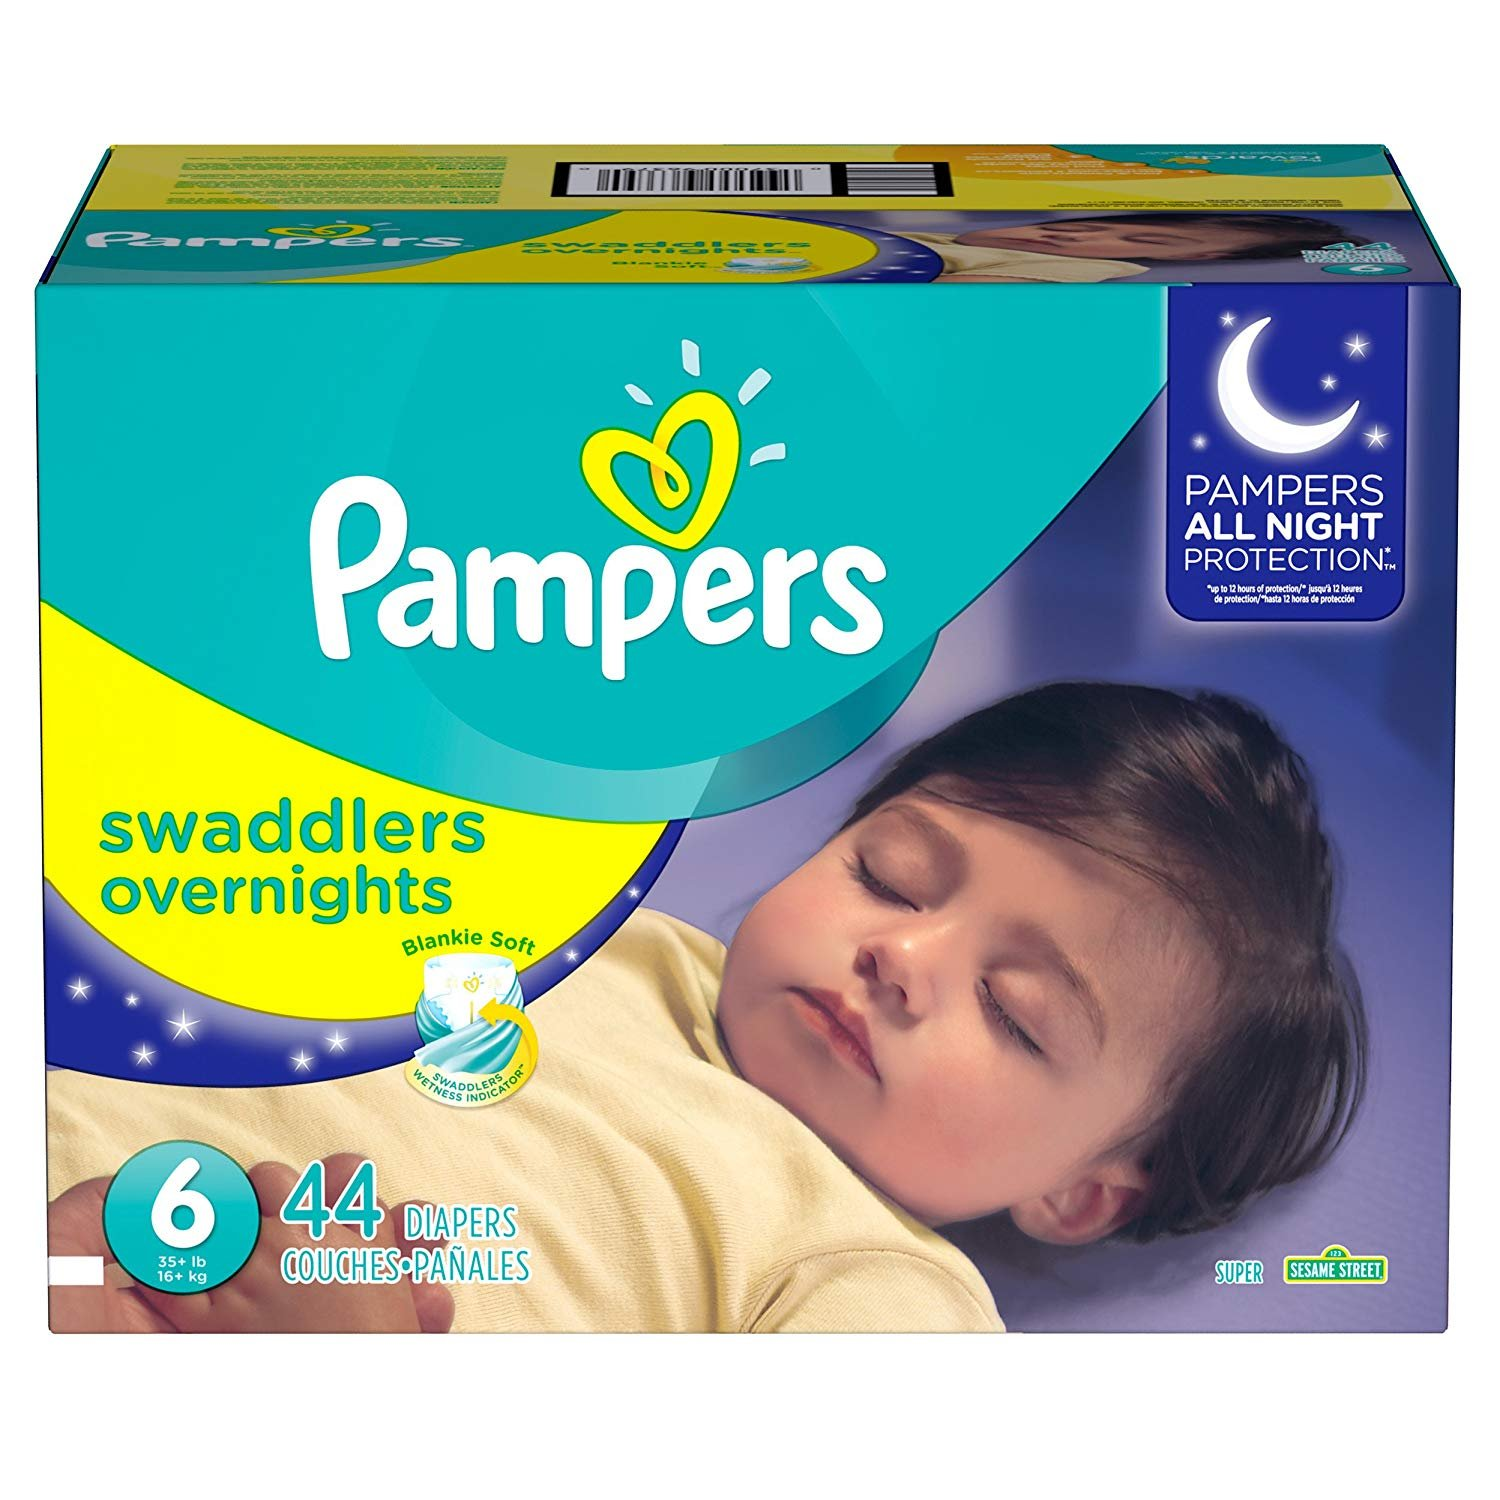 Top 12 Best Overnight Diapers & Reusable Overnight Diapers Reviews in 2021 12